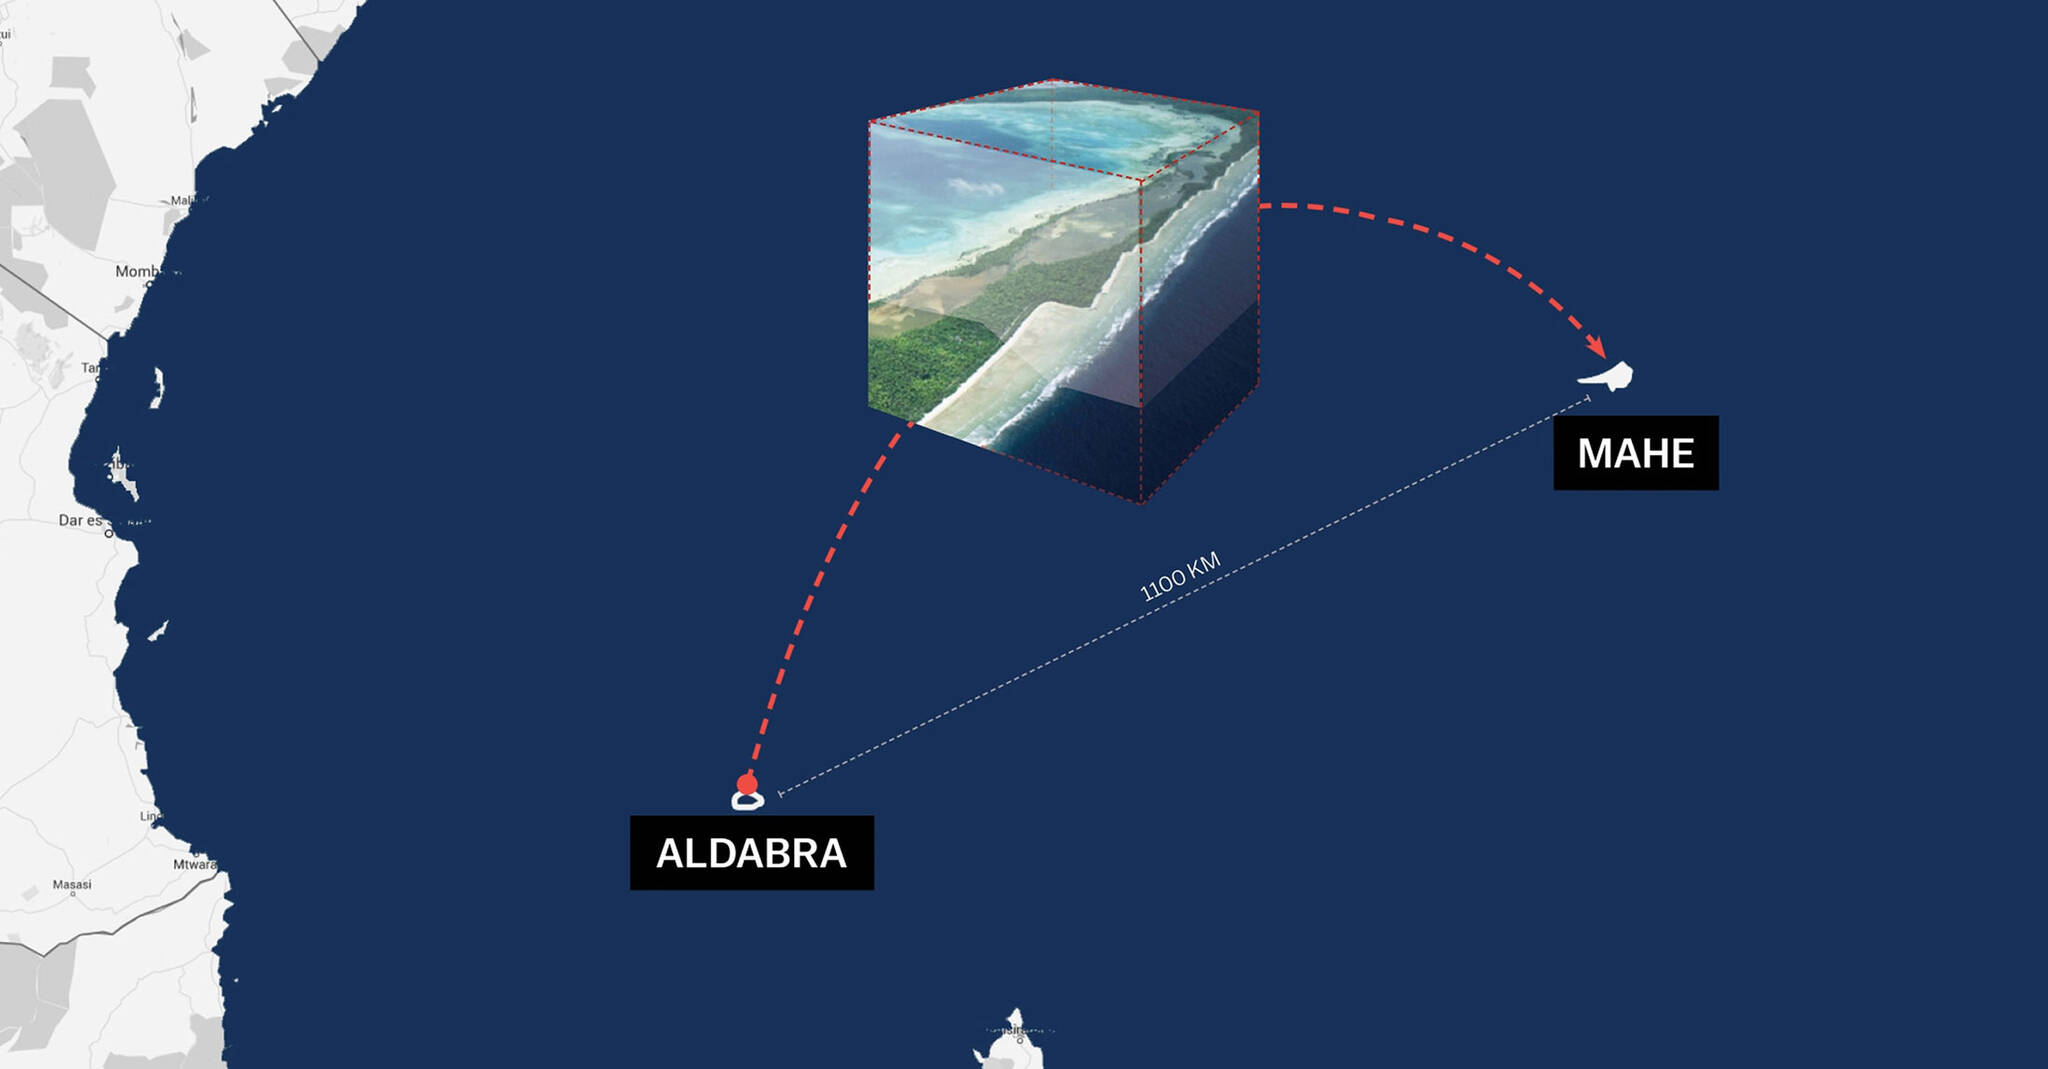 Diagram showing the distance between Mahé and Aldabra islands in the Seychelles archipelago